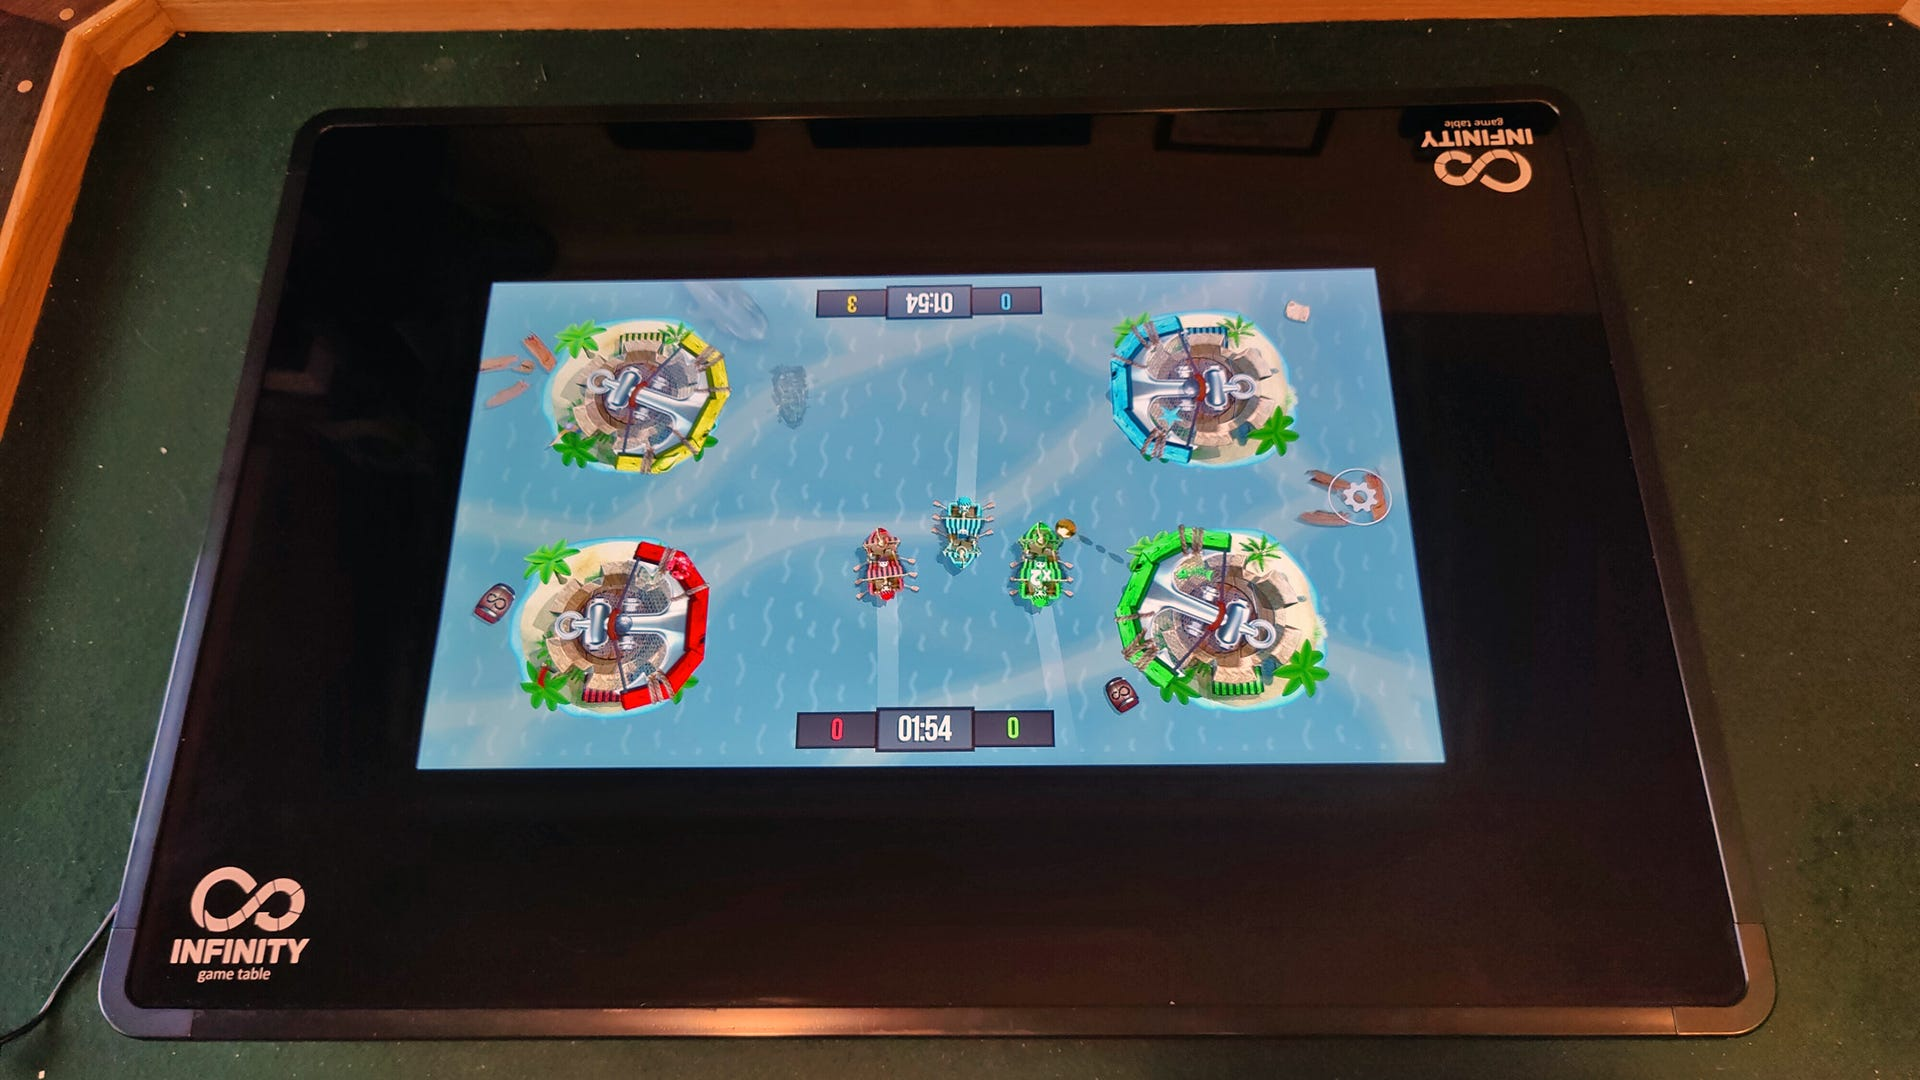 A game with pirate ships sailing on an ocean.